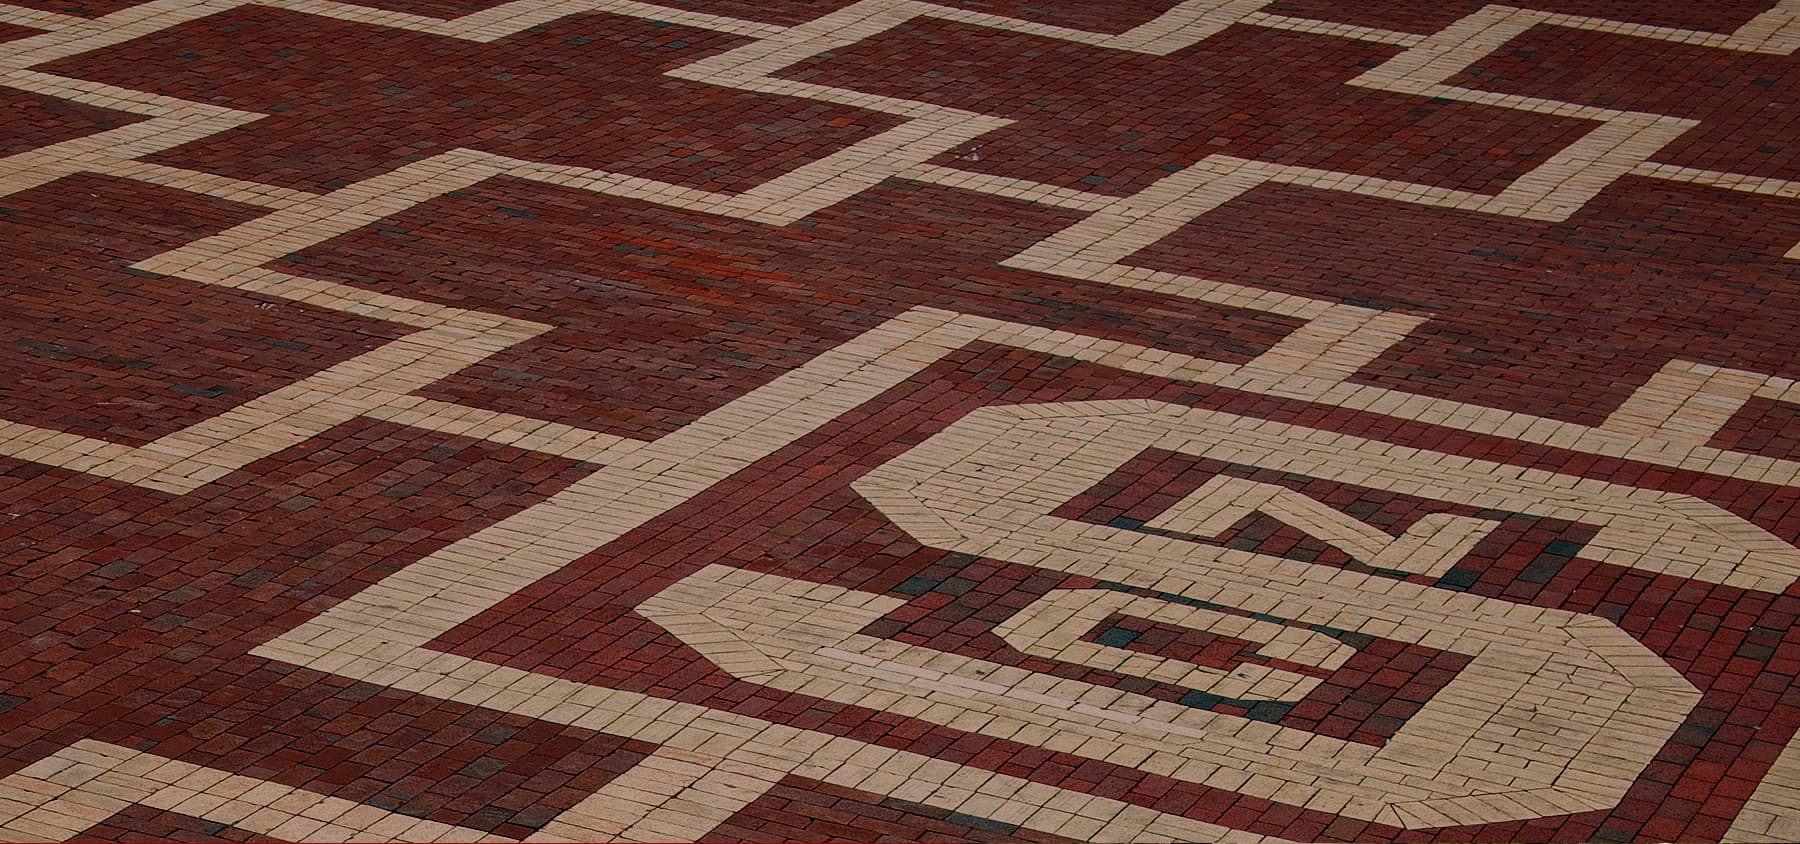 Patterned area of bricks with the NC State block S logo